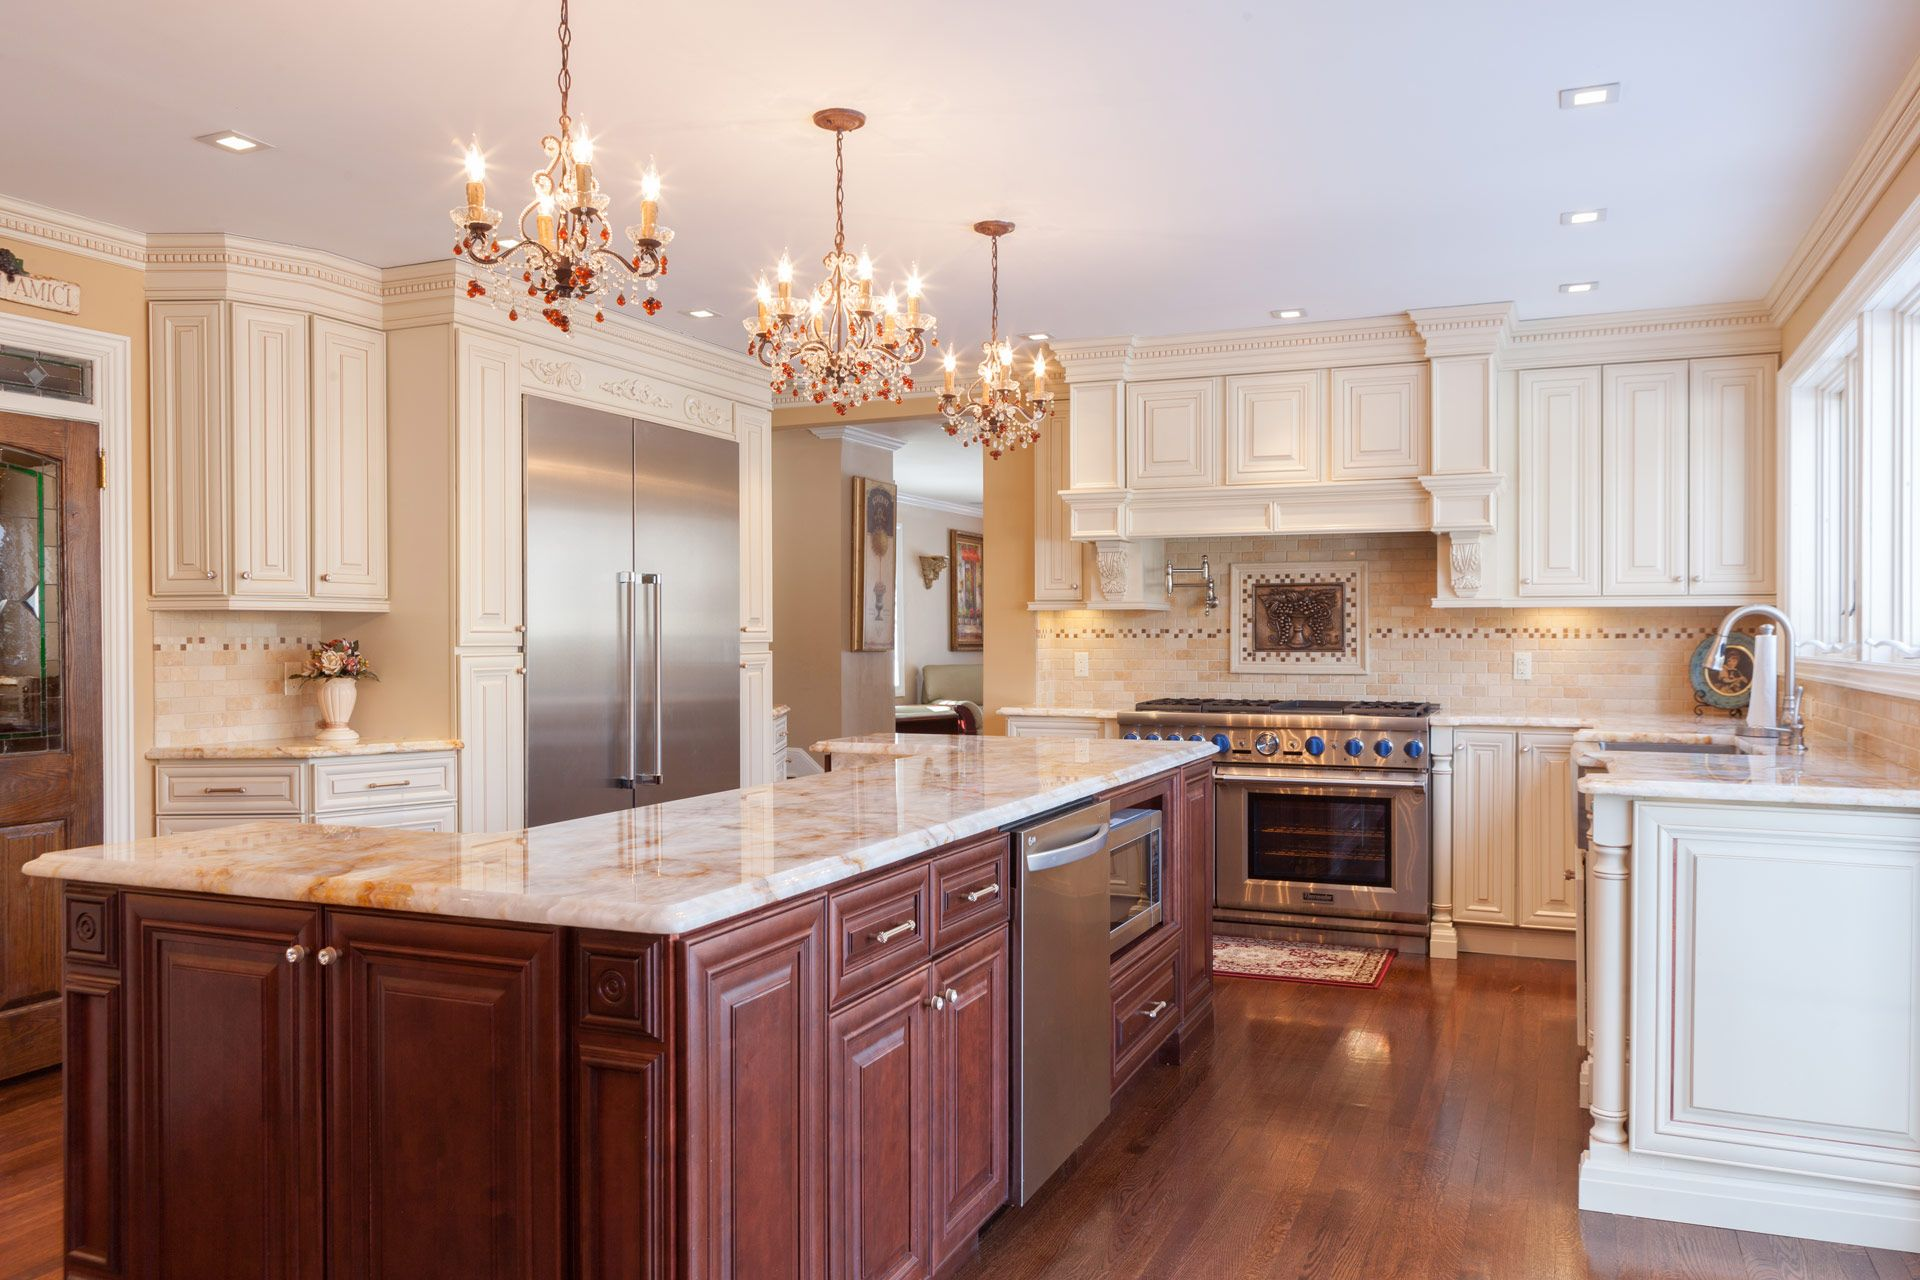 A7 Creme Glazed J K Cabinetry In 2020 Used Kitchen Cabinets Wholesale Kitchen Cabinets Wood Kitchen